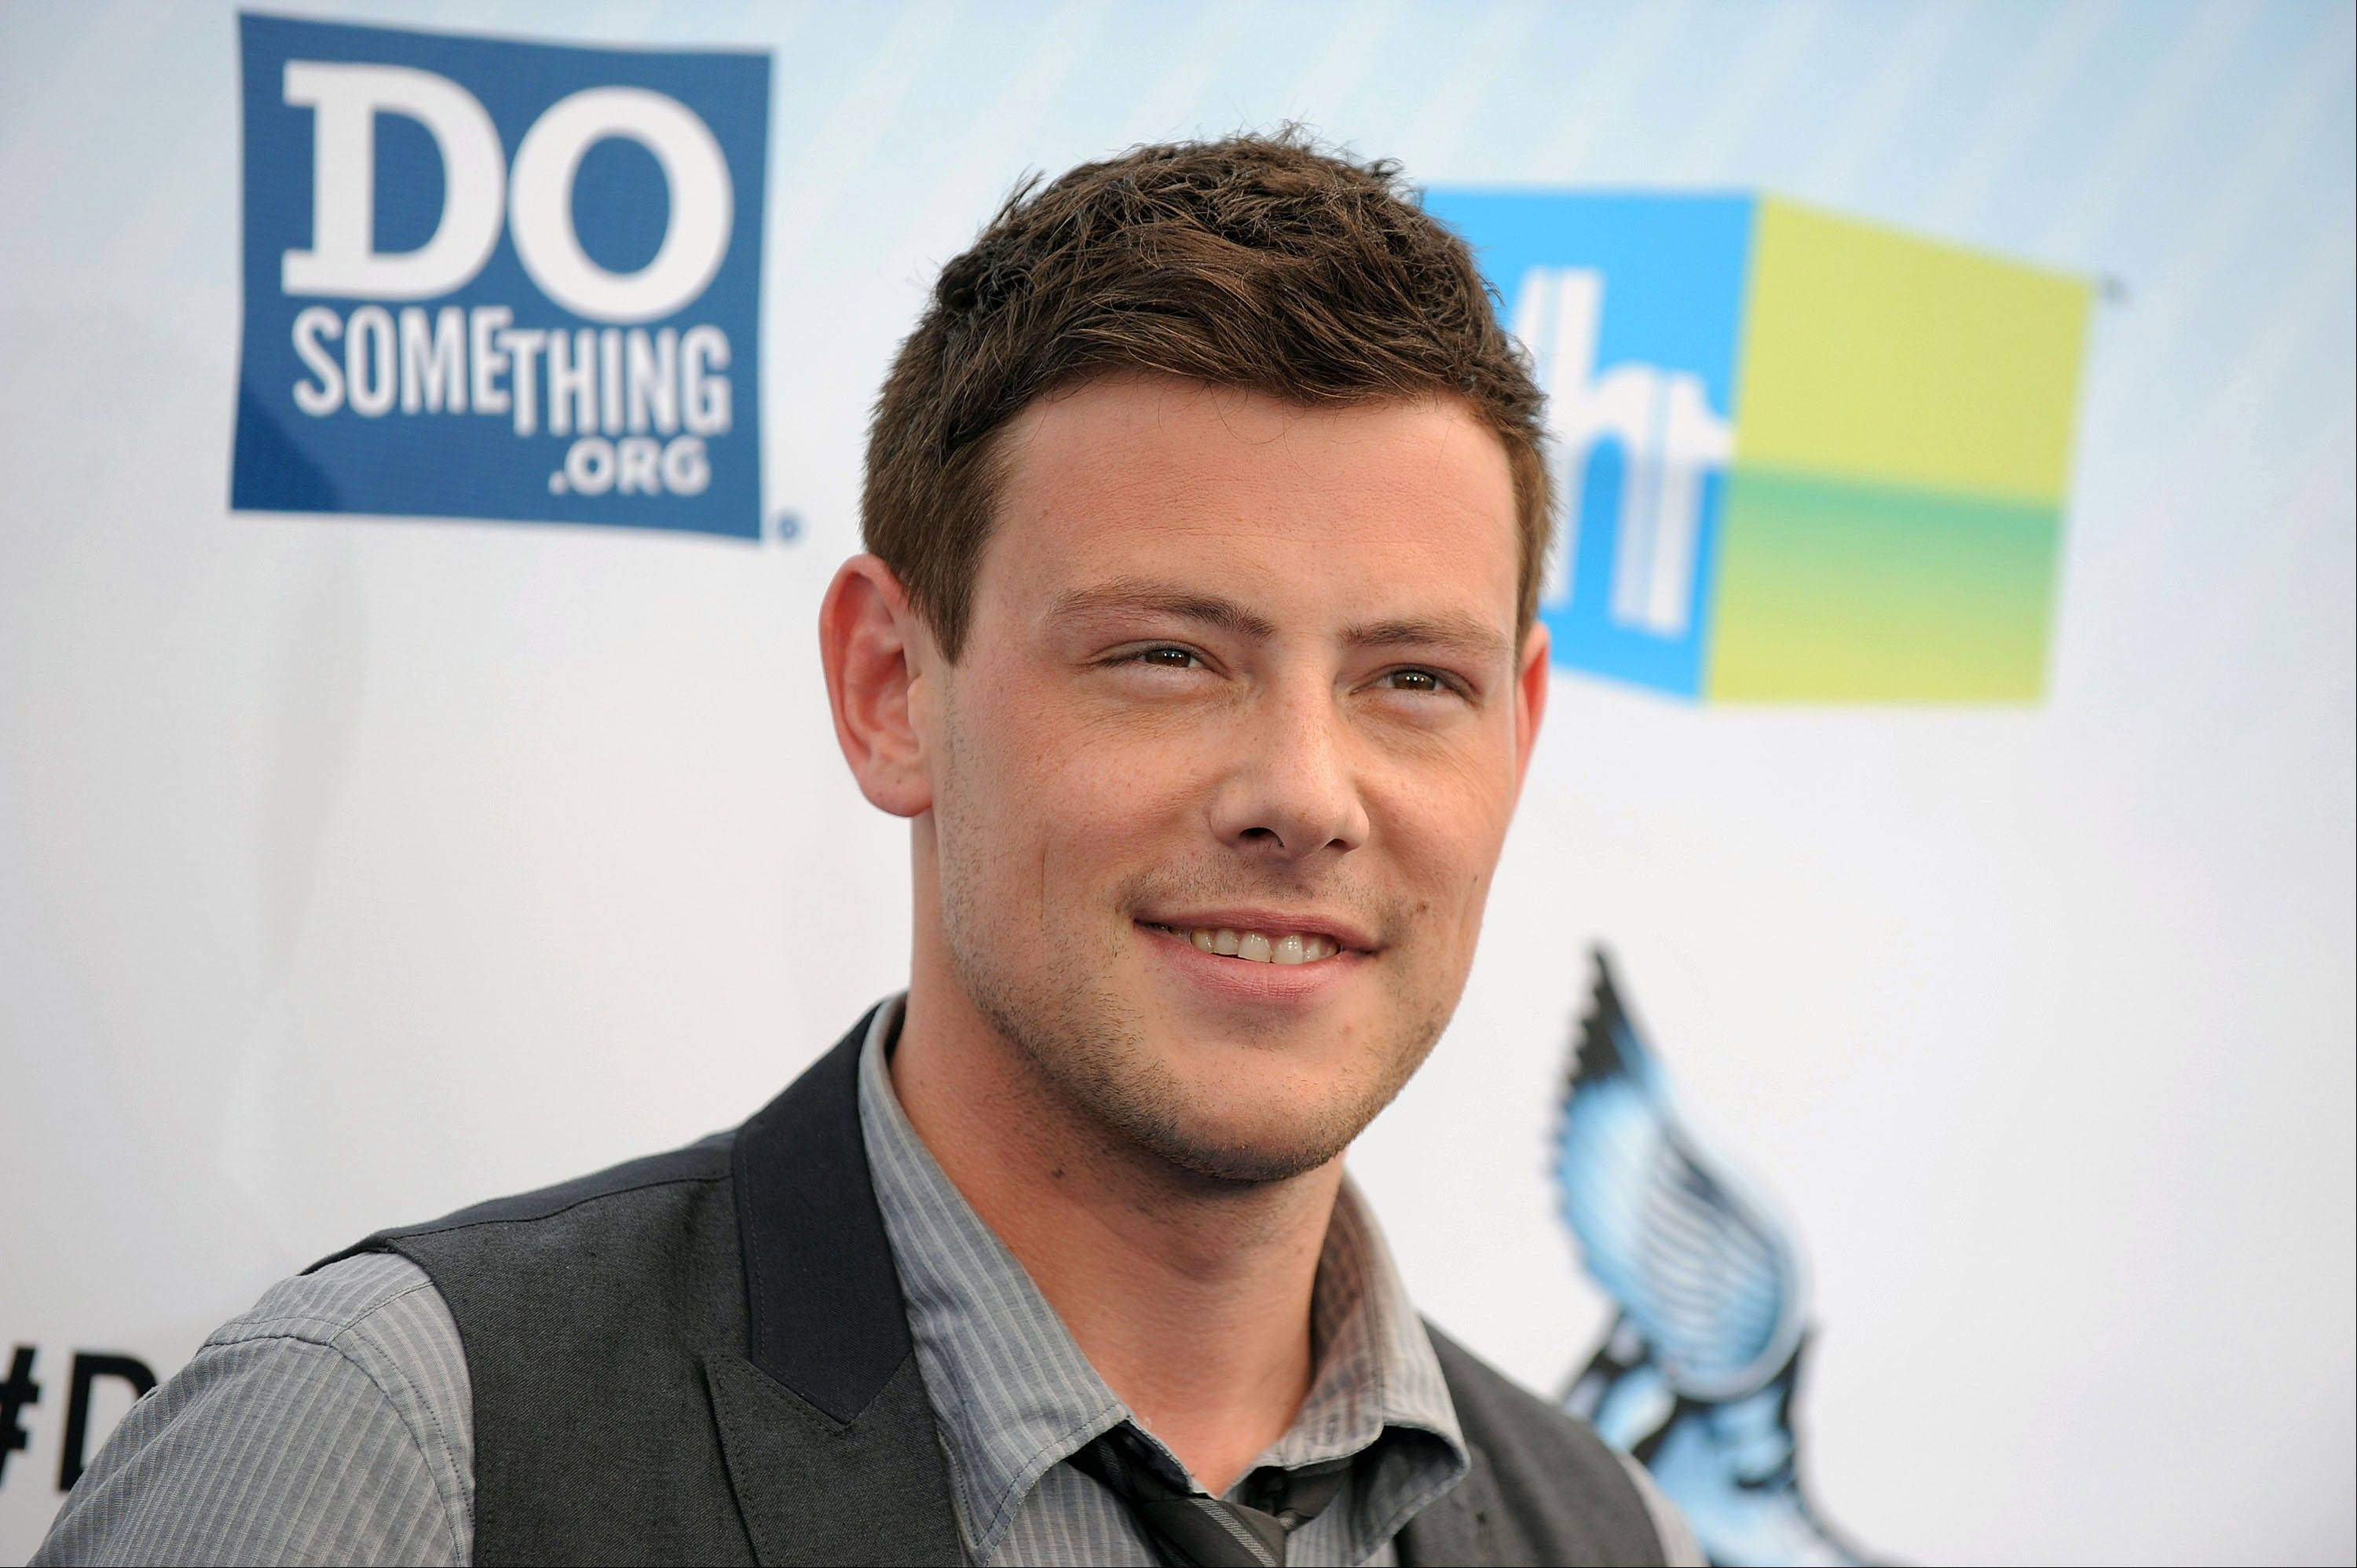 With no obvious cause of death for �Glee� star Cory Monteith, the British Columbia Coroners Service says it will do further testing to determine how the 31-year-old died.